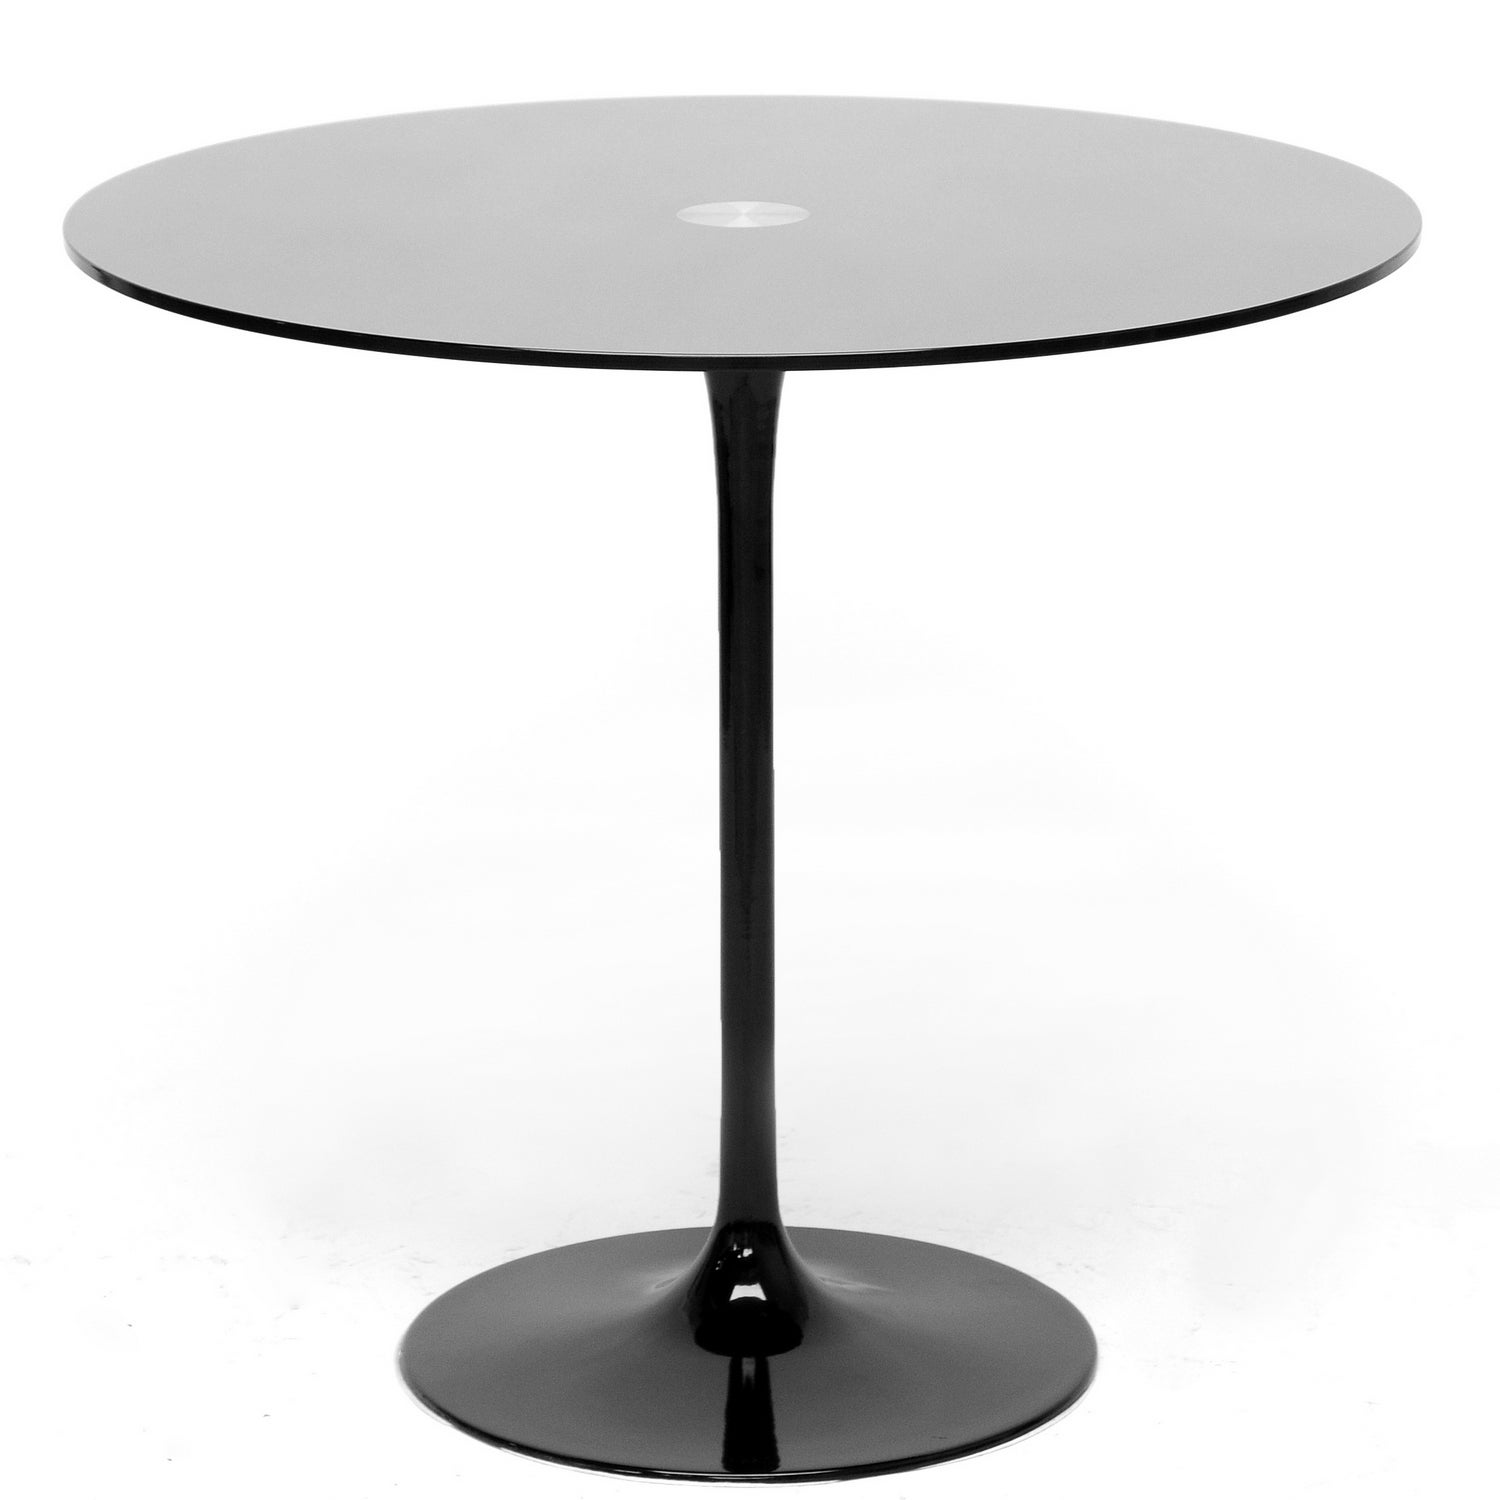 Odensa Black Glass Modern Bistro Table 14049154  : Odensa Black Glass Modern Bistro Table L14049154 from www.overstock.com size 1500 x 1500 jpeg 109kB